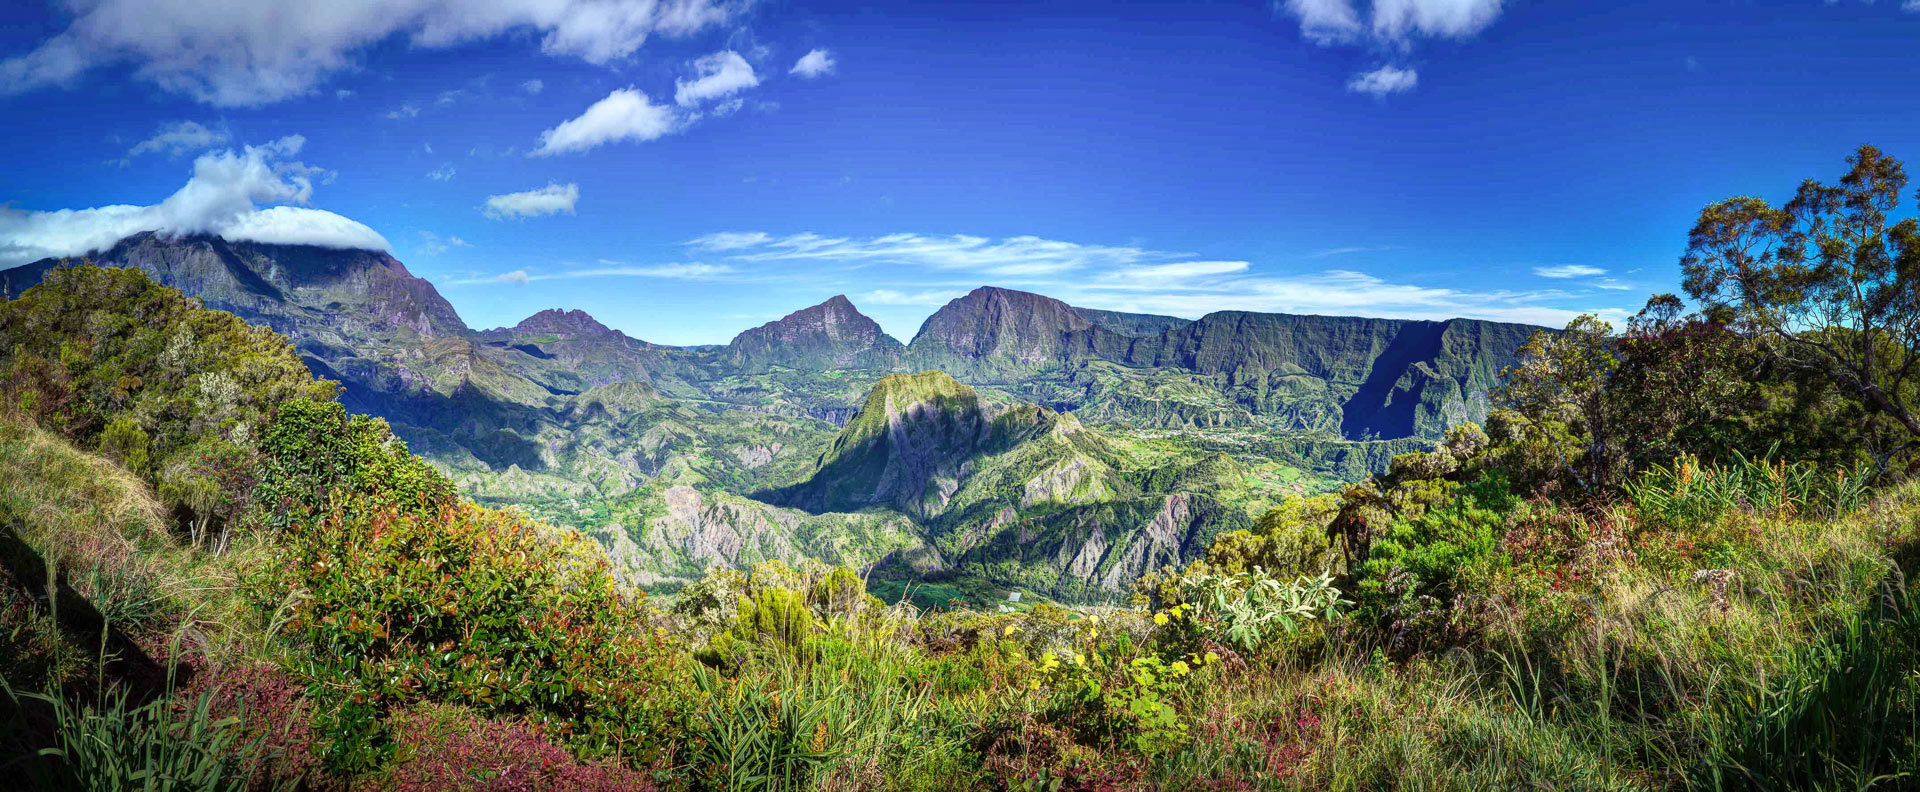 2 Or 3 Weeks In Reunion Island Itinerary 14 15 16 Days Or More Bonadvisor